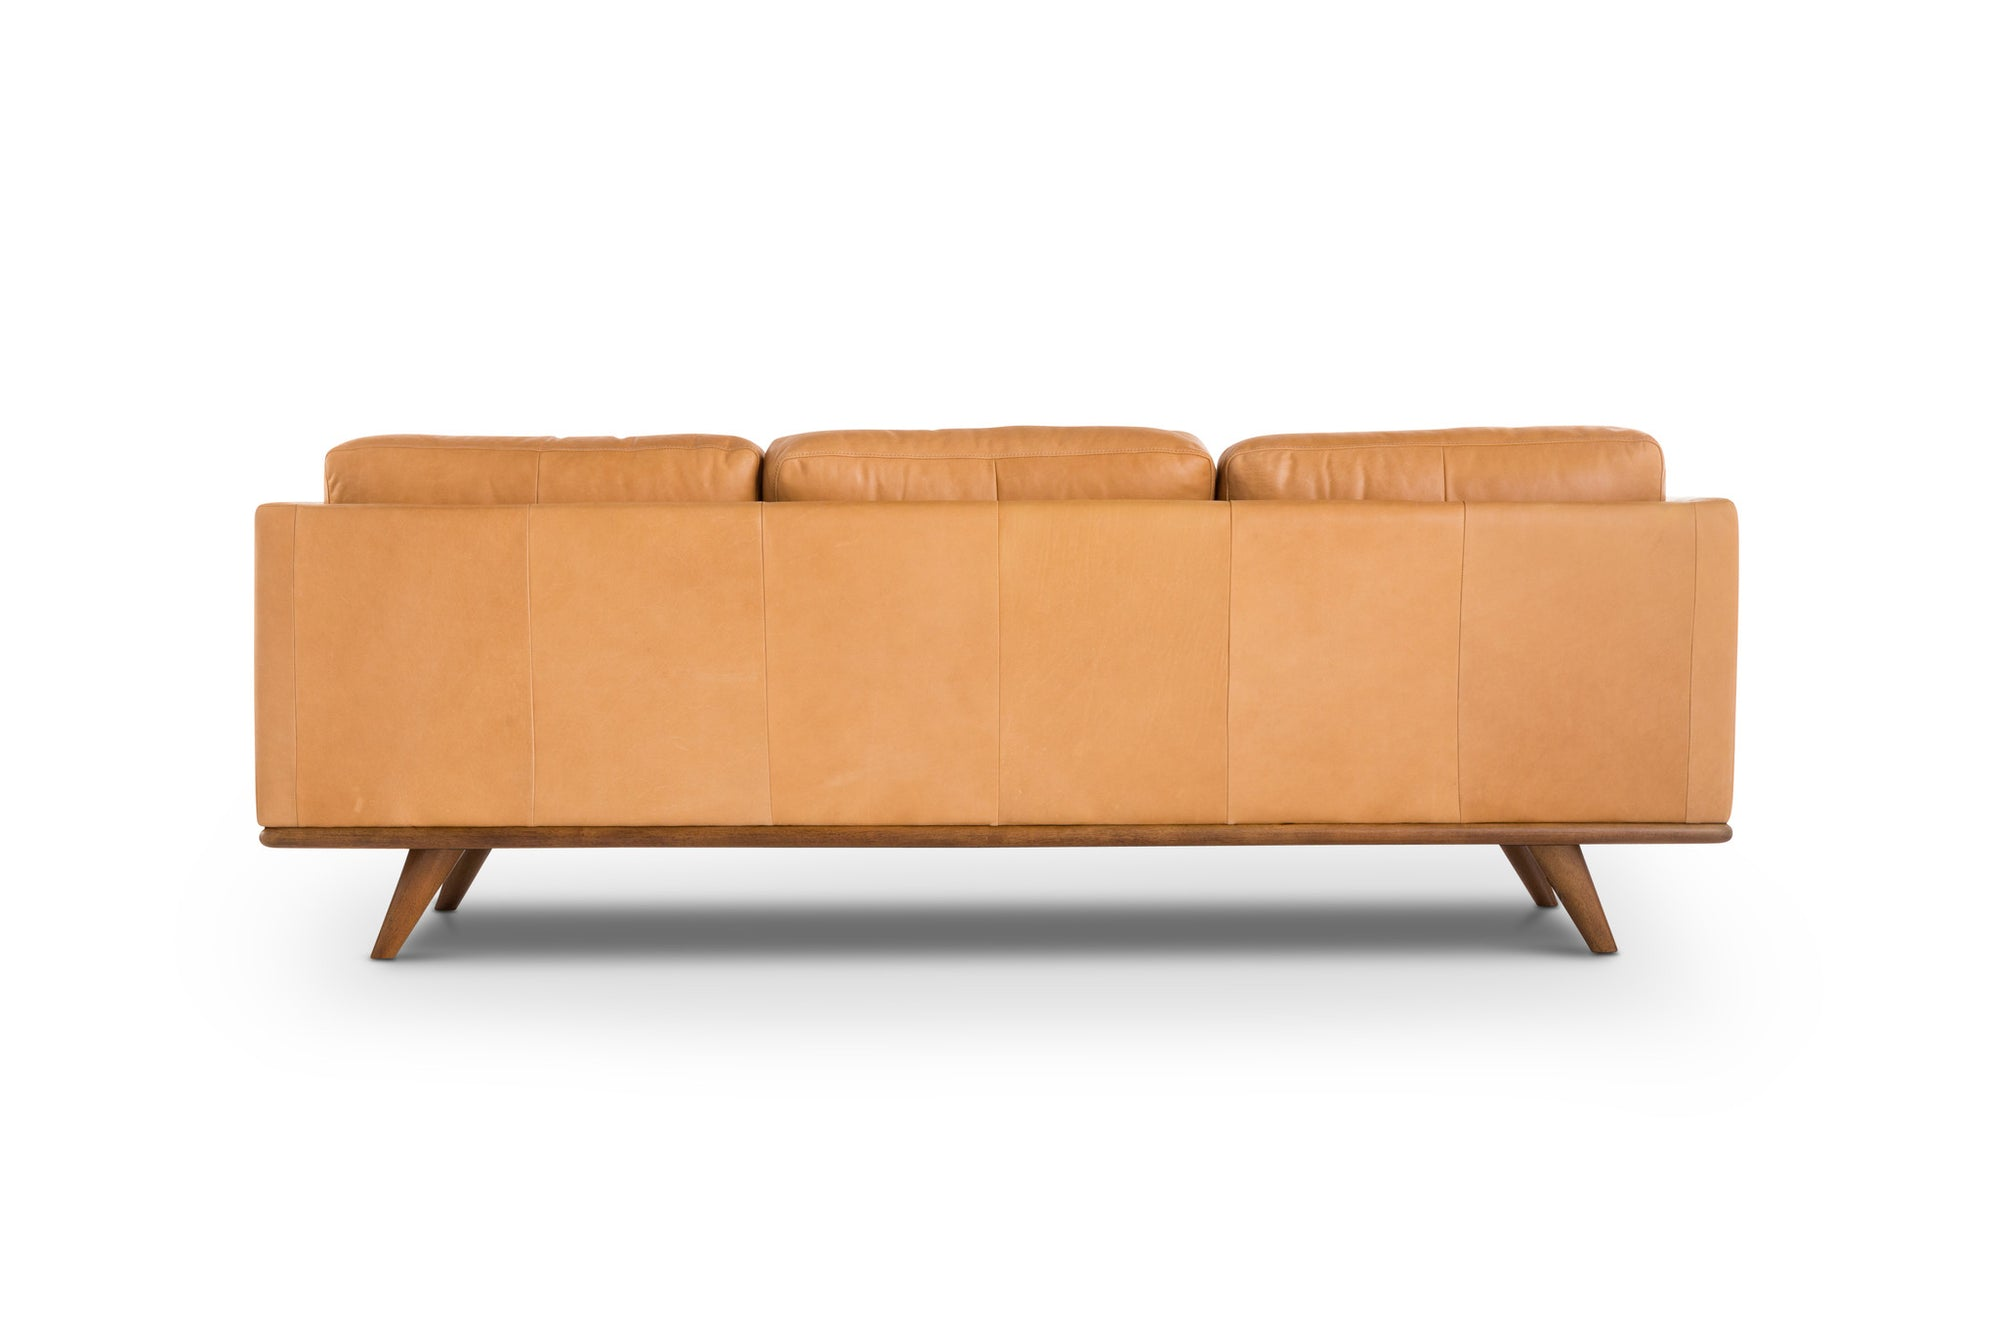 Modern danish living room furniture Fort Worth TX